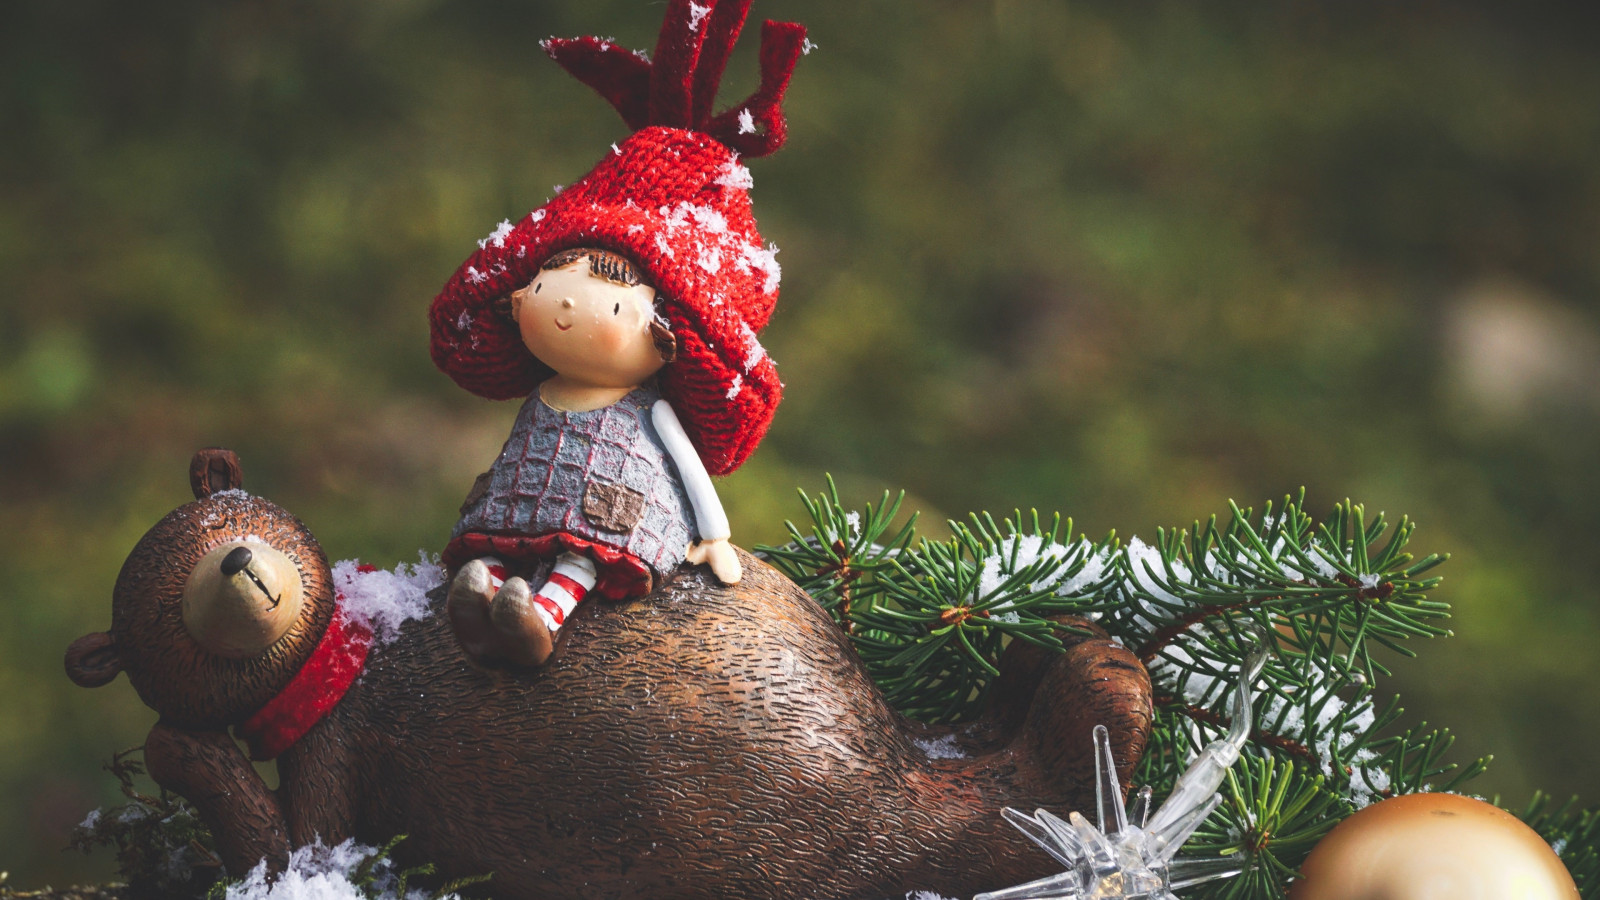 Cute Christmas decoration wallpaper 1600x900